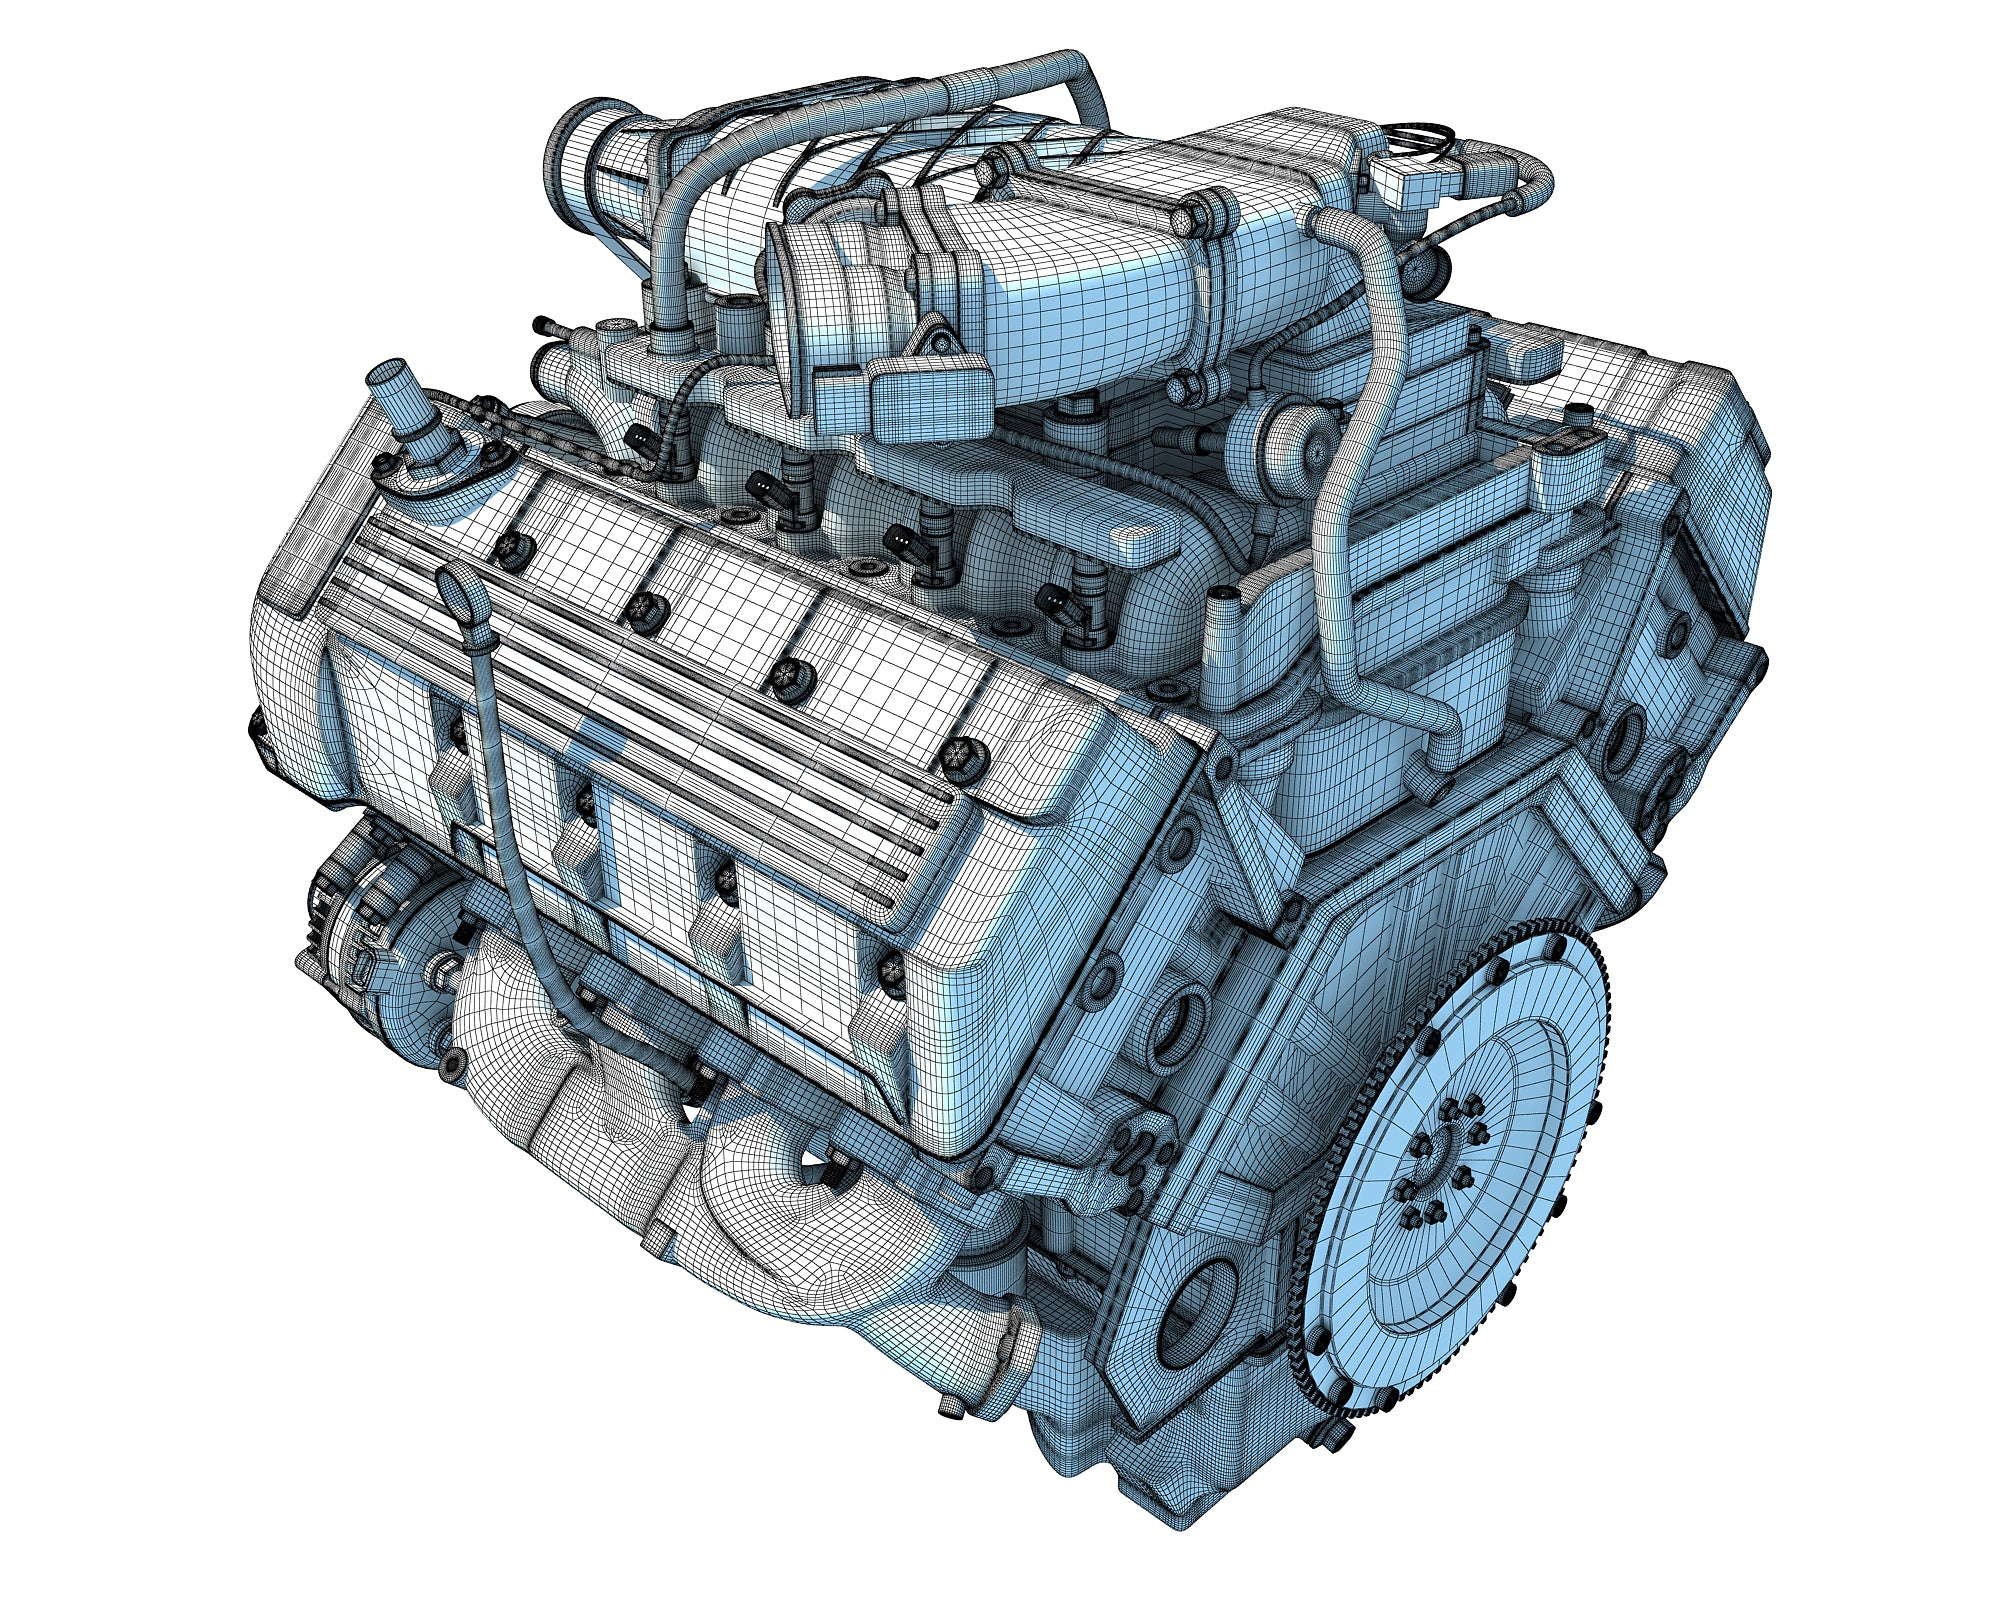 Animated Engine 3D Models